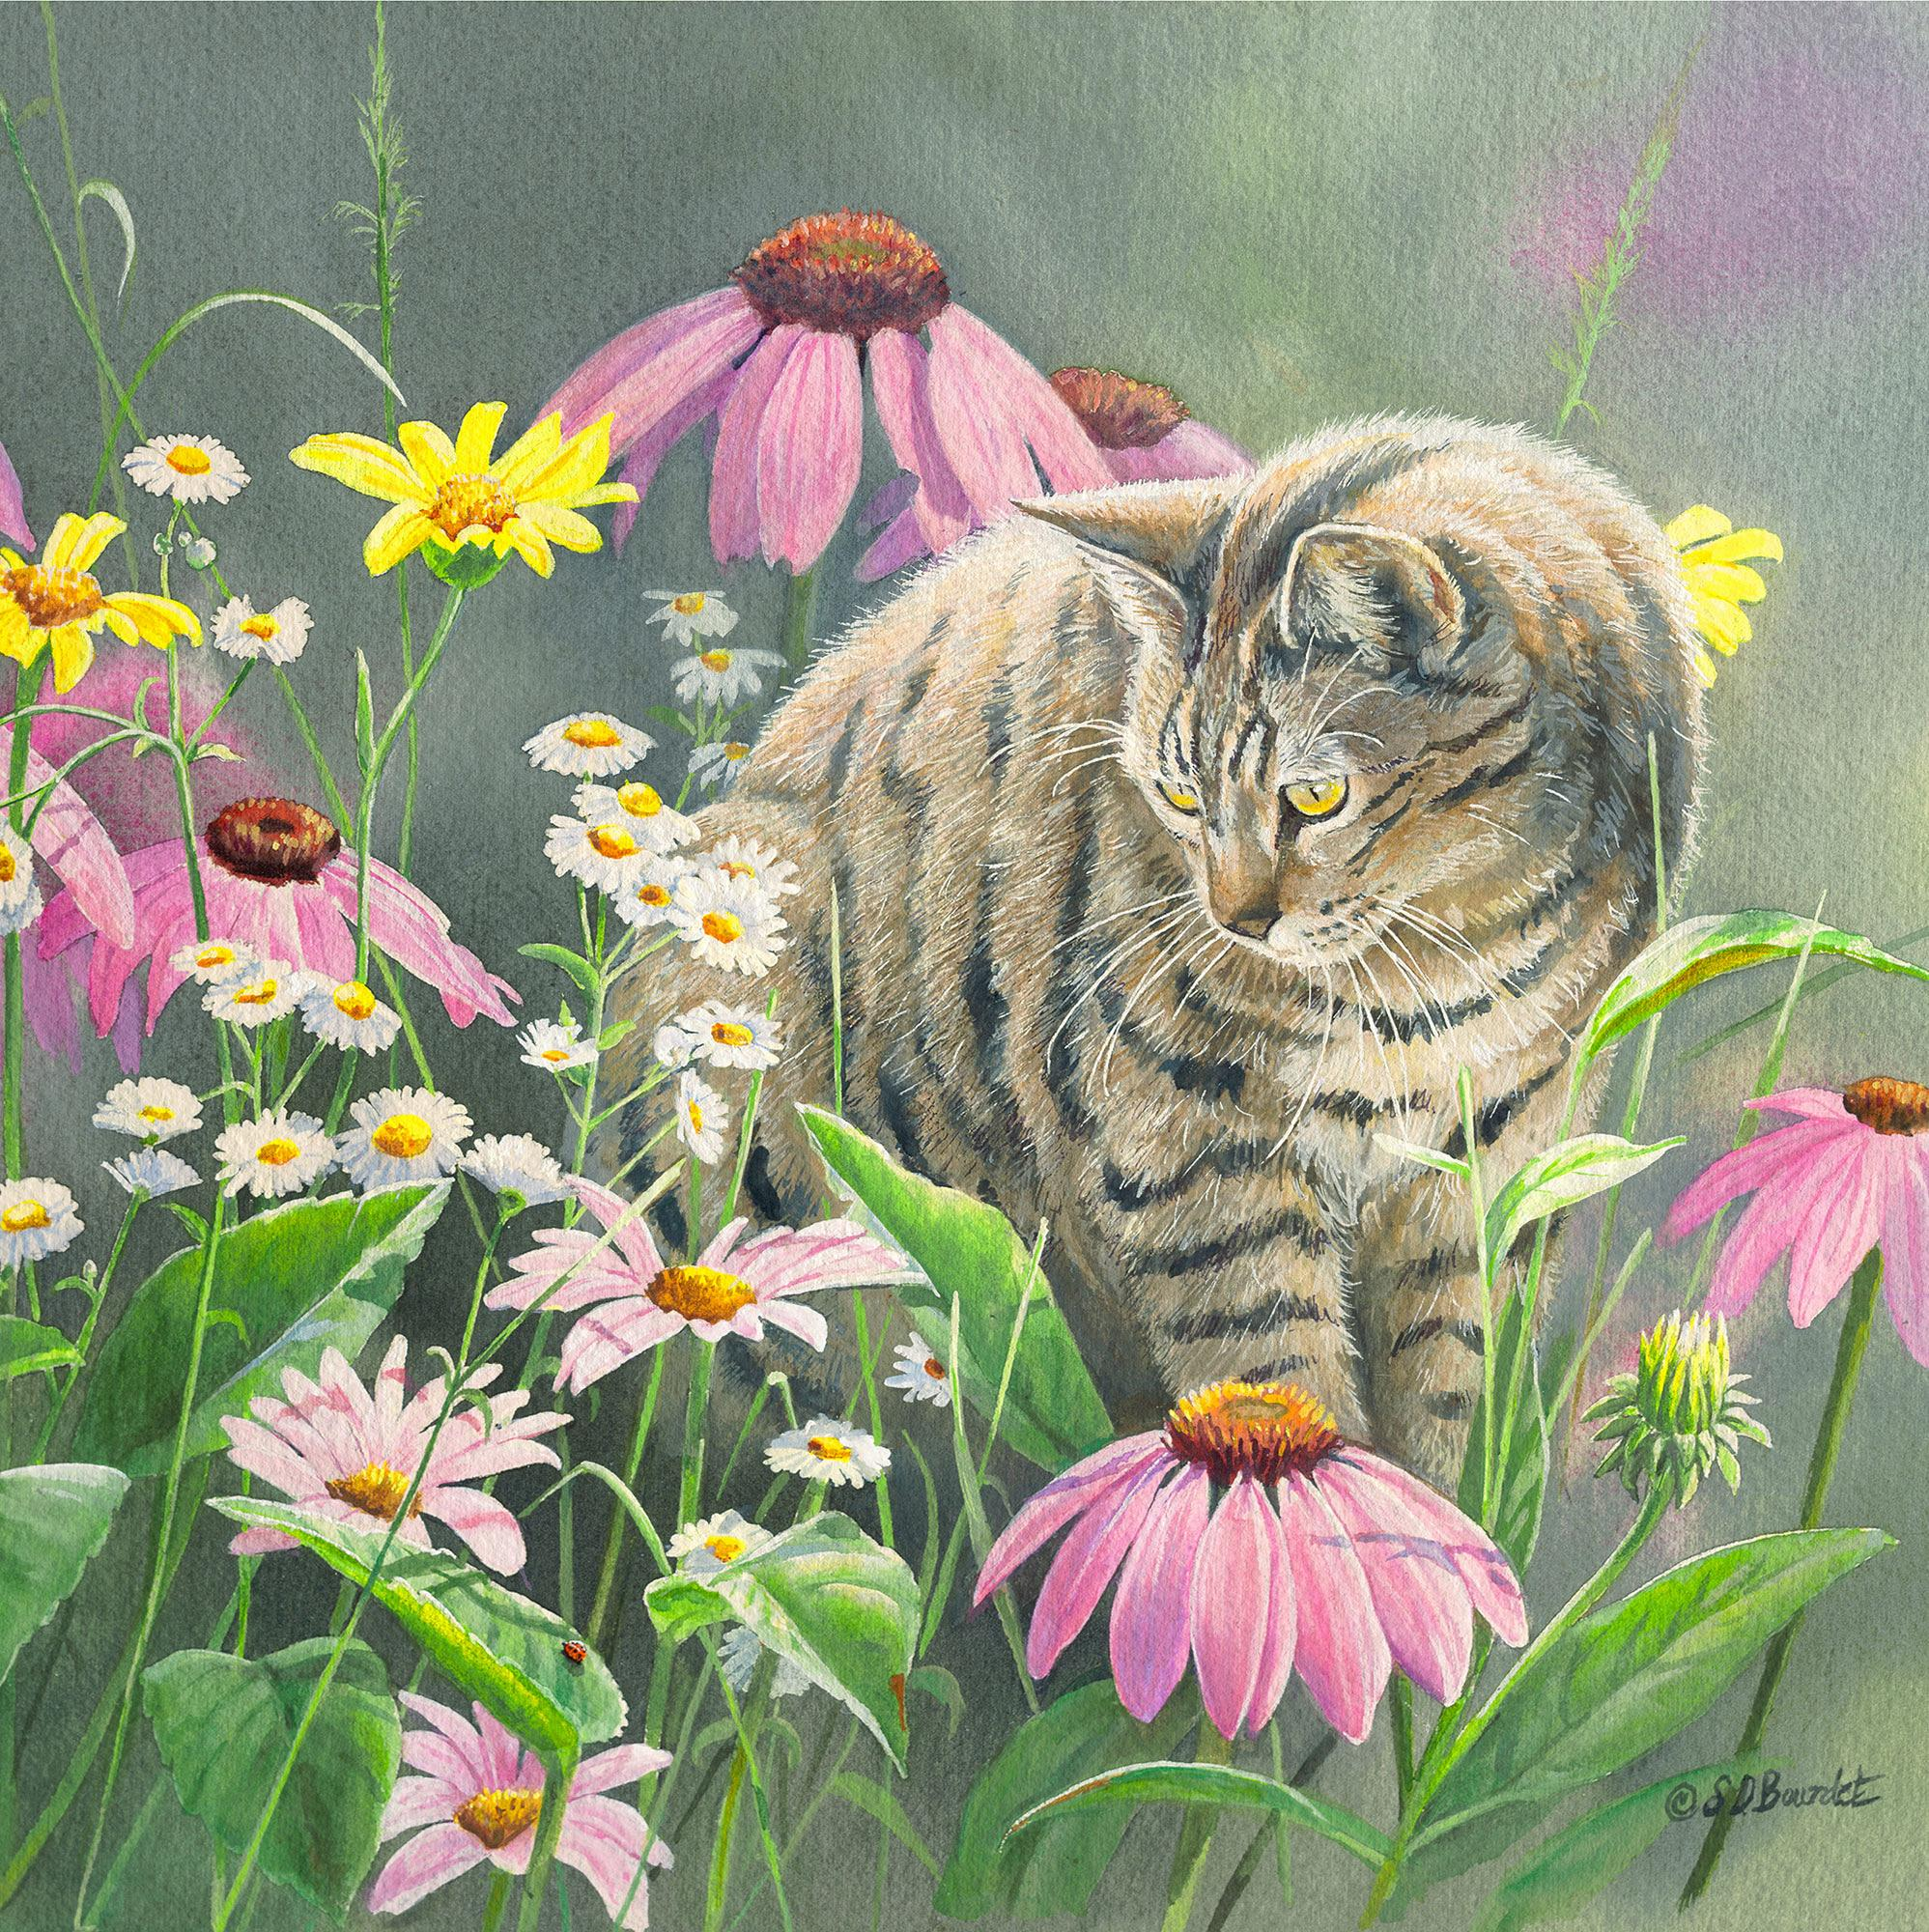 In the Wildflowers-Cat Art Collection